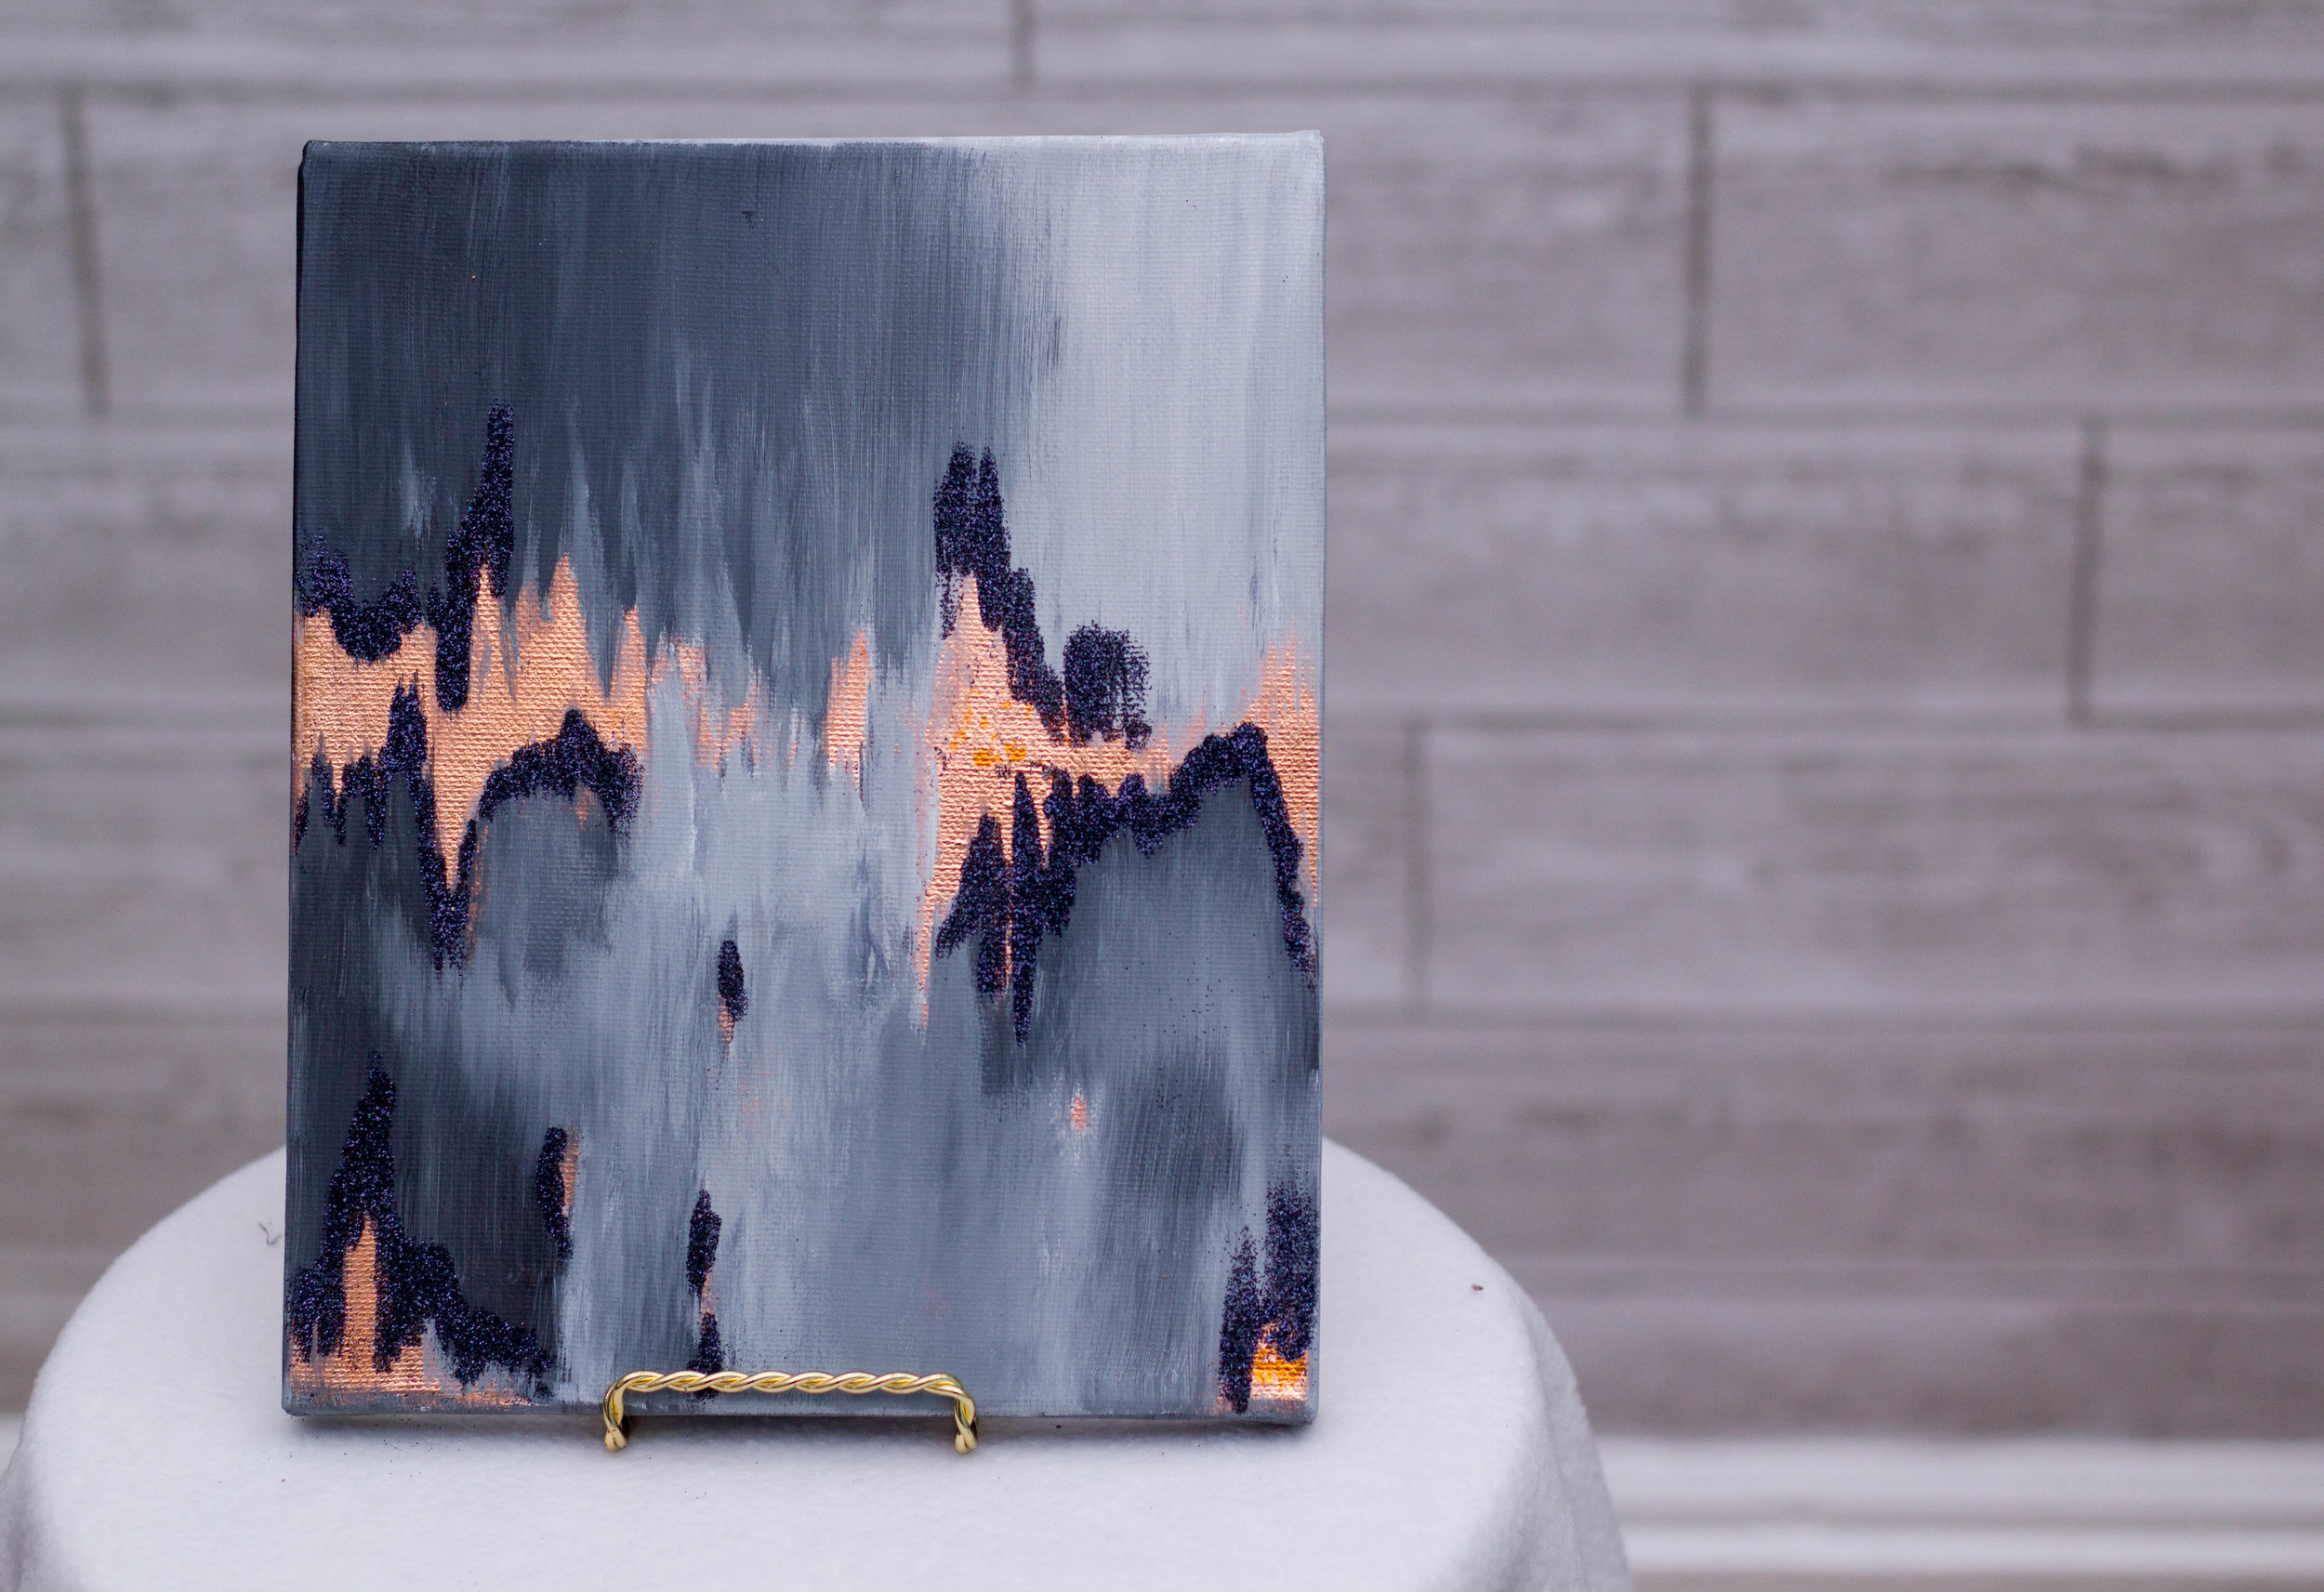 Abstract Wall Art (COMING SOON)